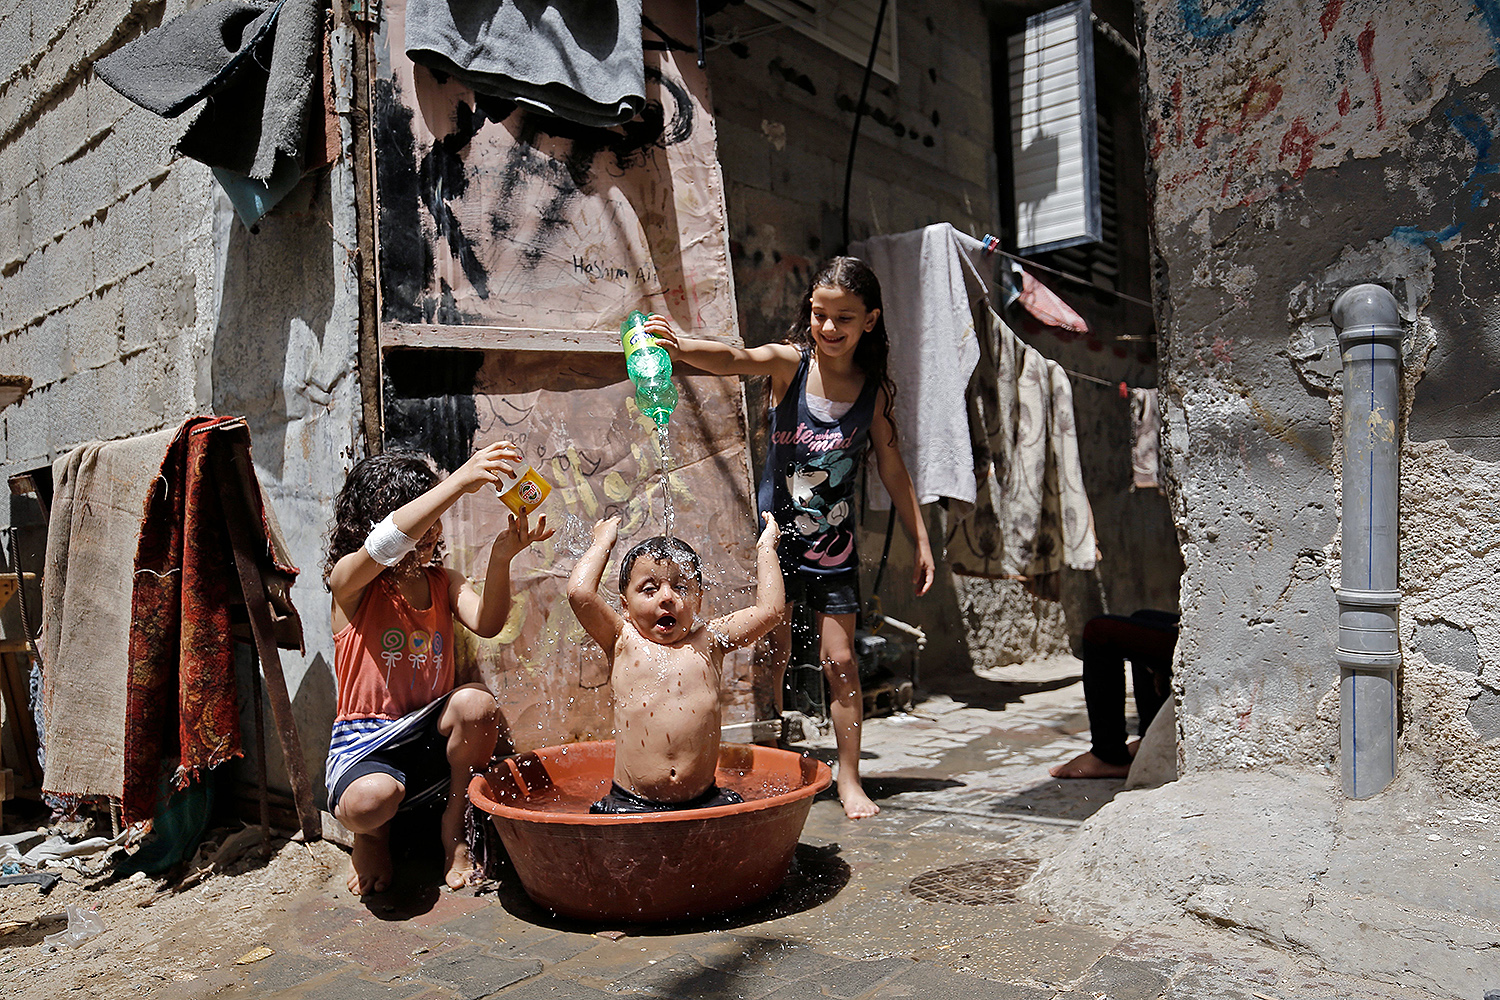 The simple things Palestinian girls pour water over a child's head to help him cool off during a heatwave at the Bureij refugee camp in the central Gaza Strip on May 19. MOHAMMED ABED/AFP via Getty Images